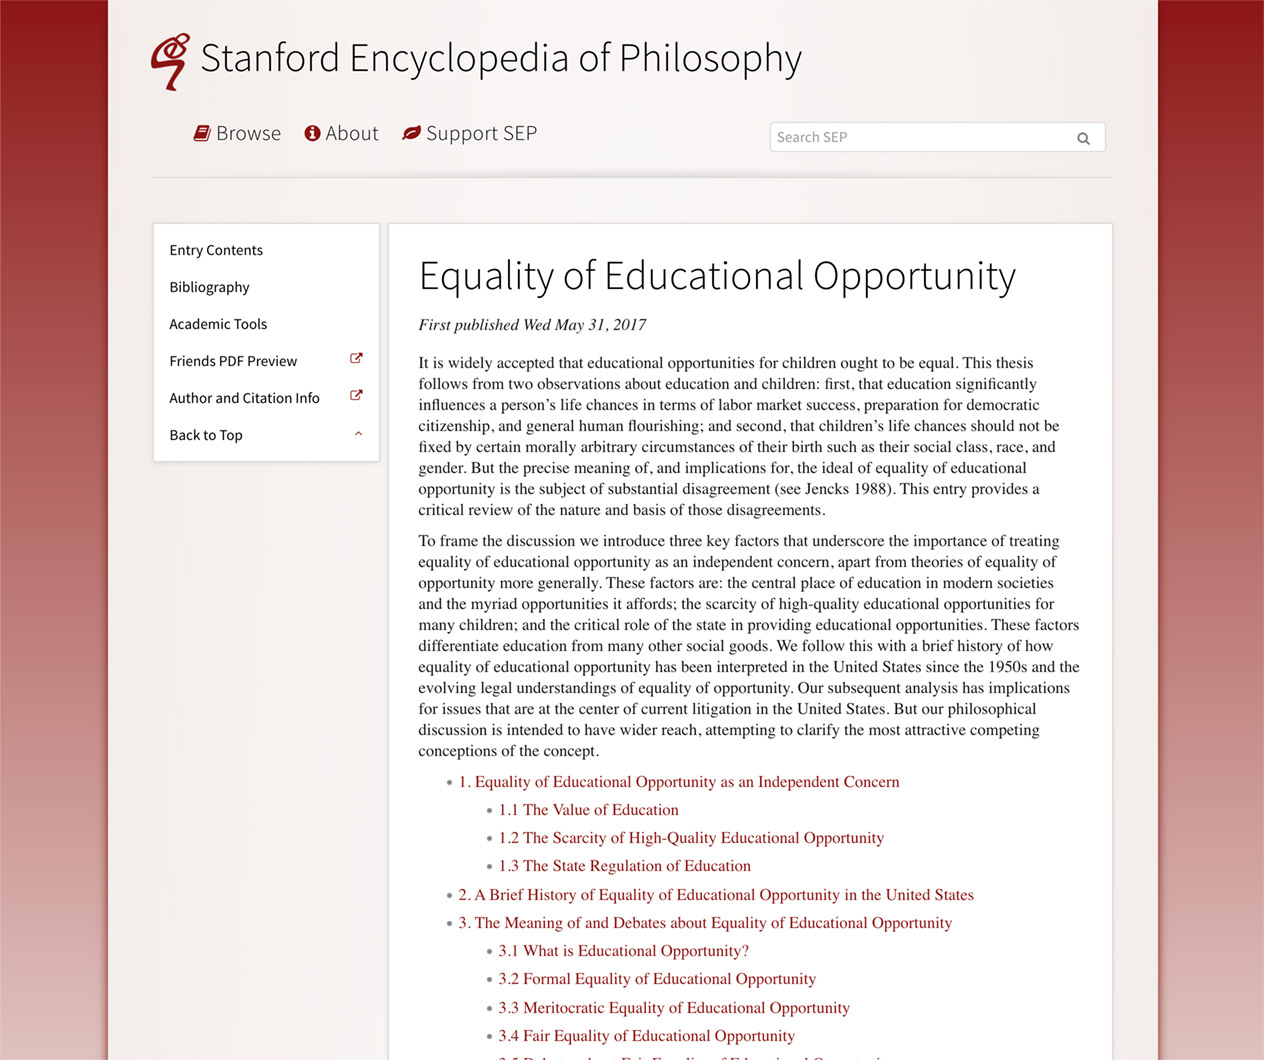 Equality of Educational Opportunity